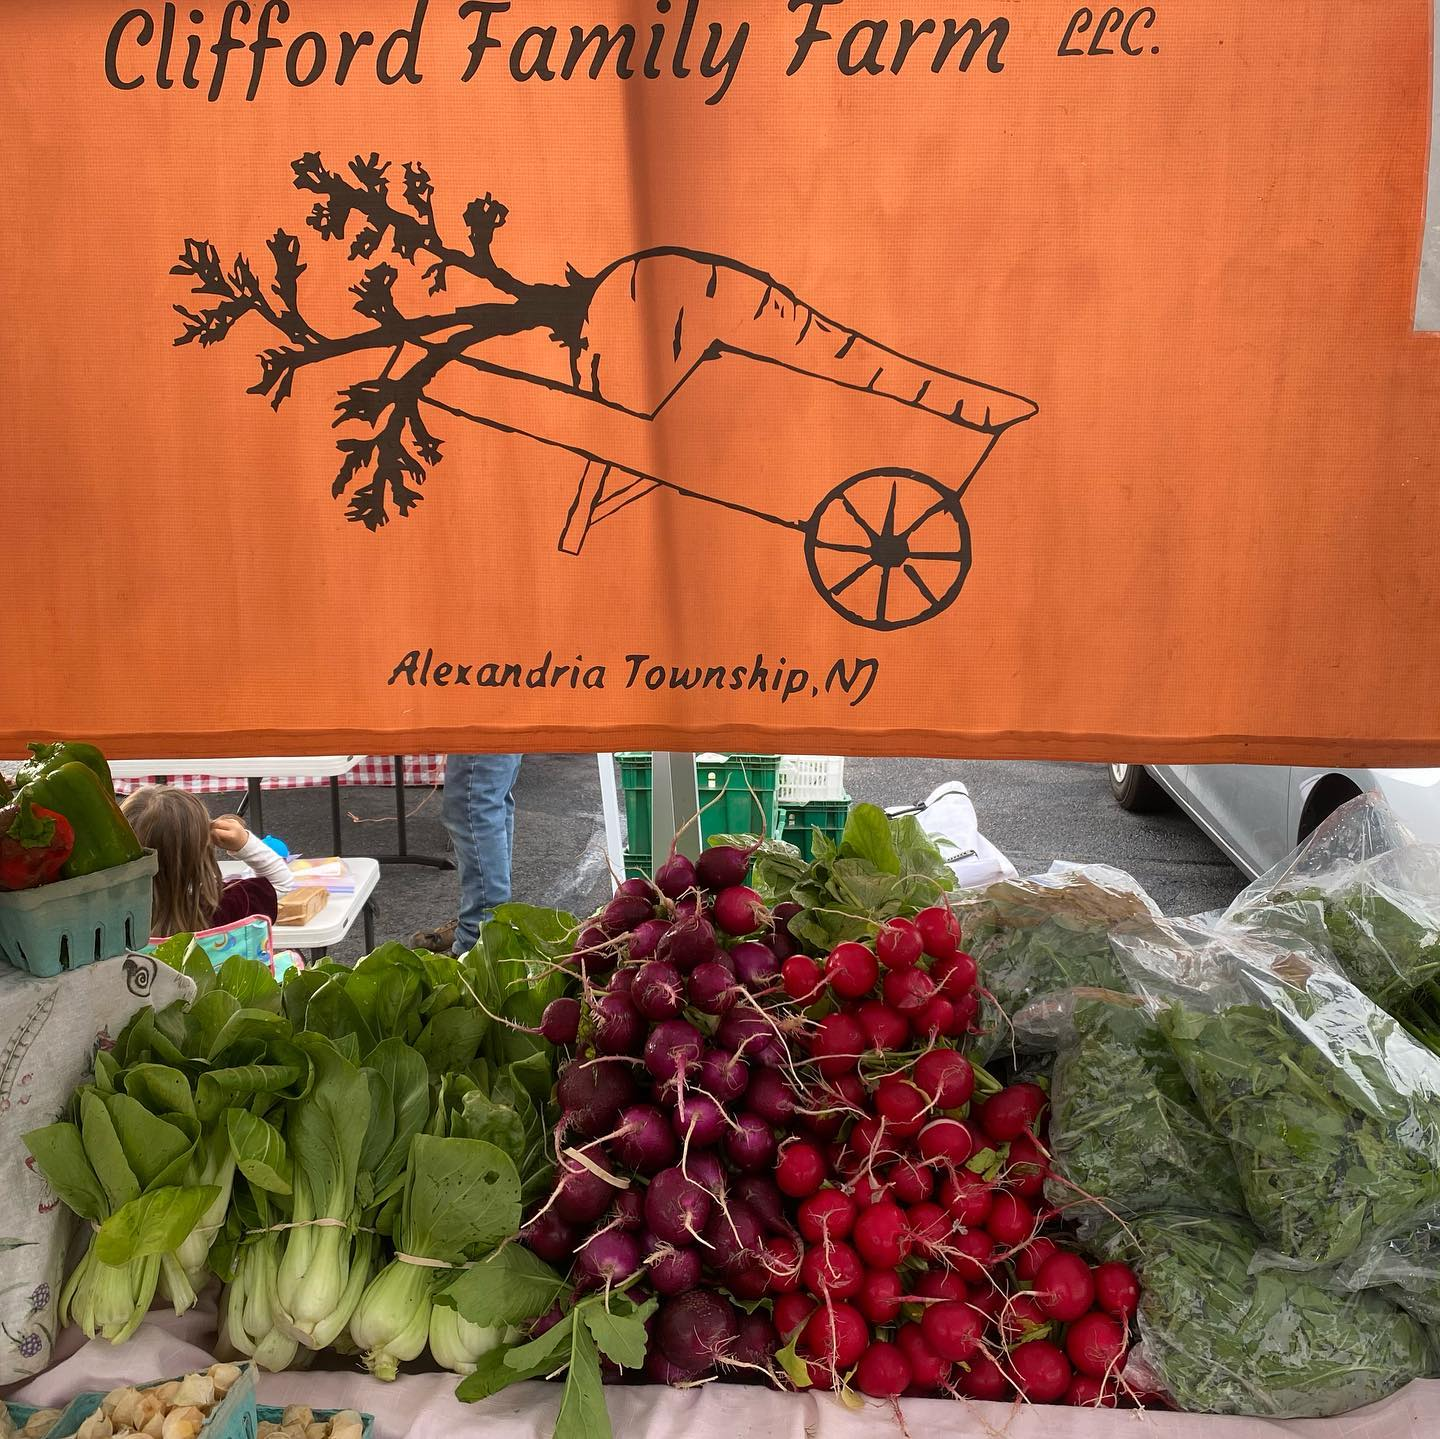 Clifford Family Farm in Frenchtown NJ is Hiring Field Hands and Farmers Market Attendants